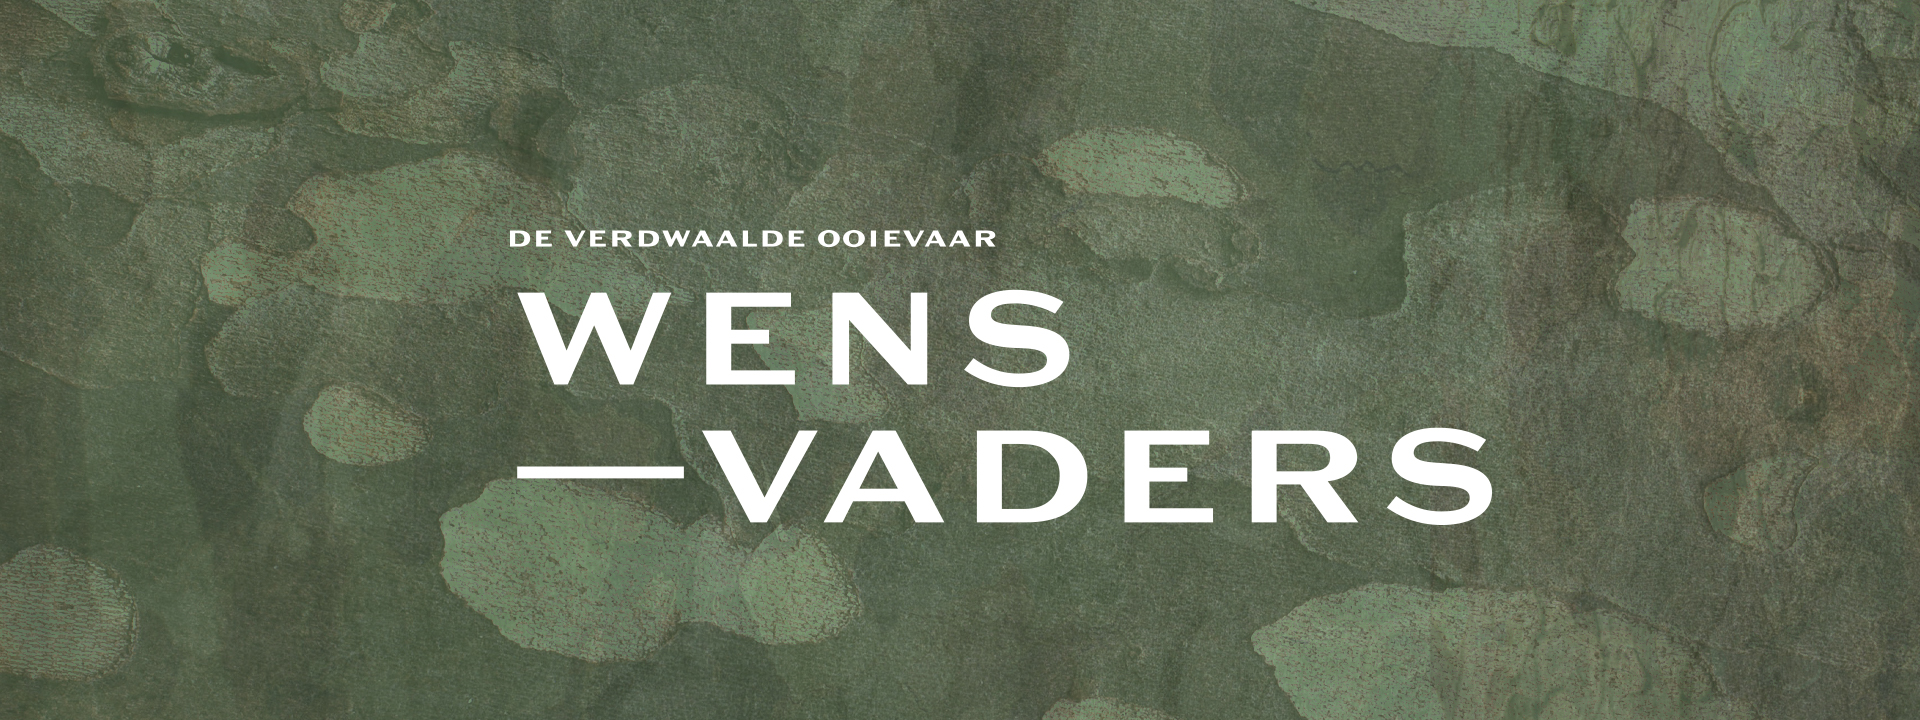 DVO-wensvaders-header-02-1920x720